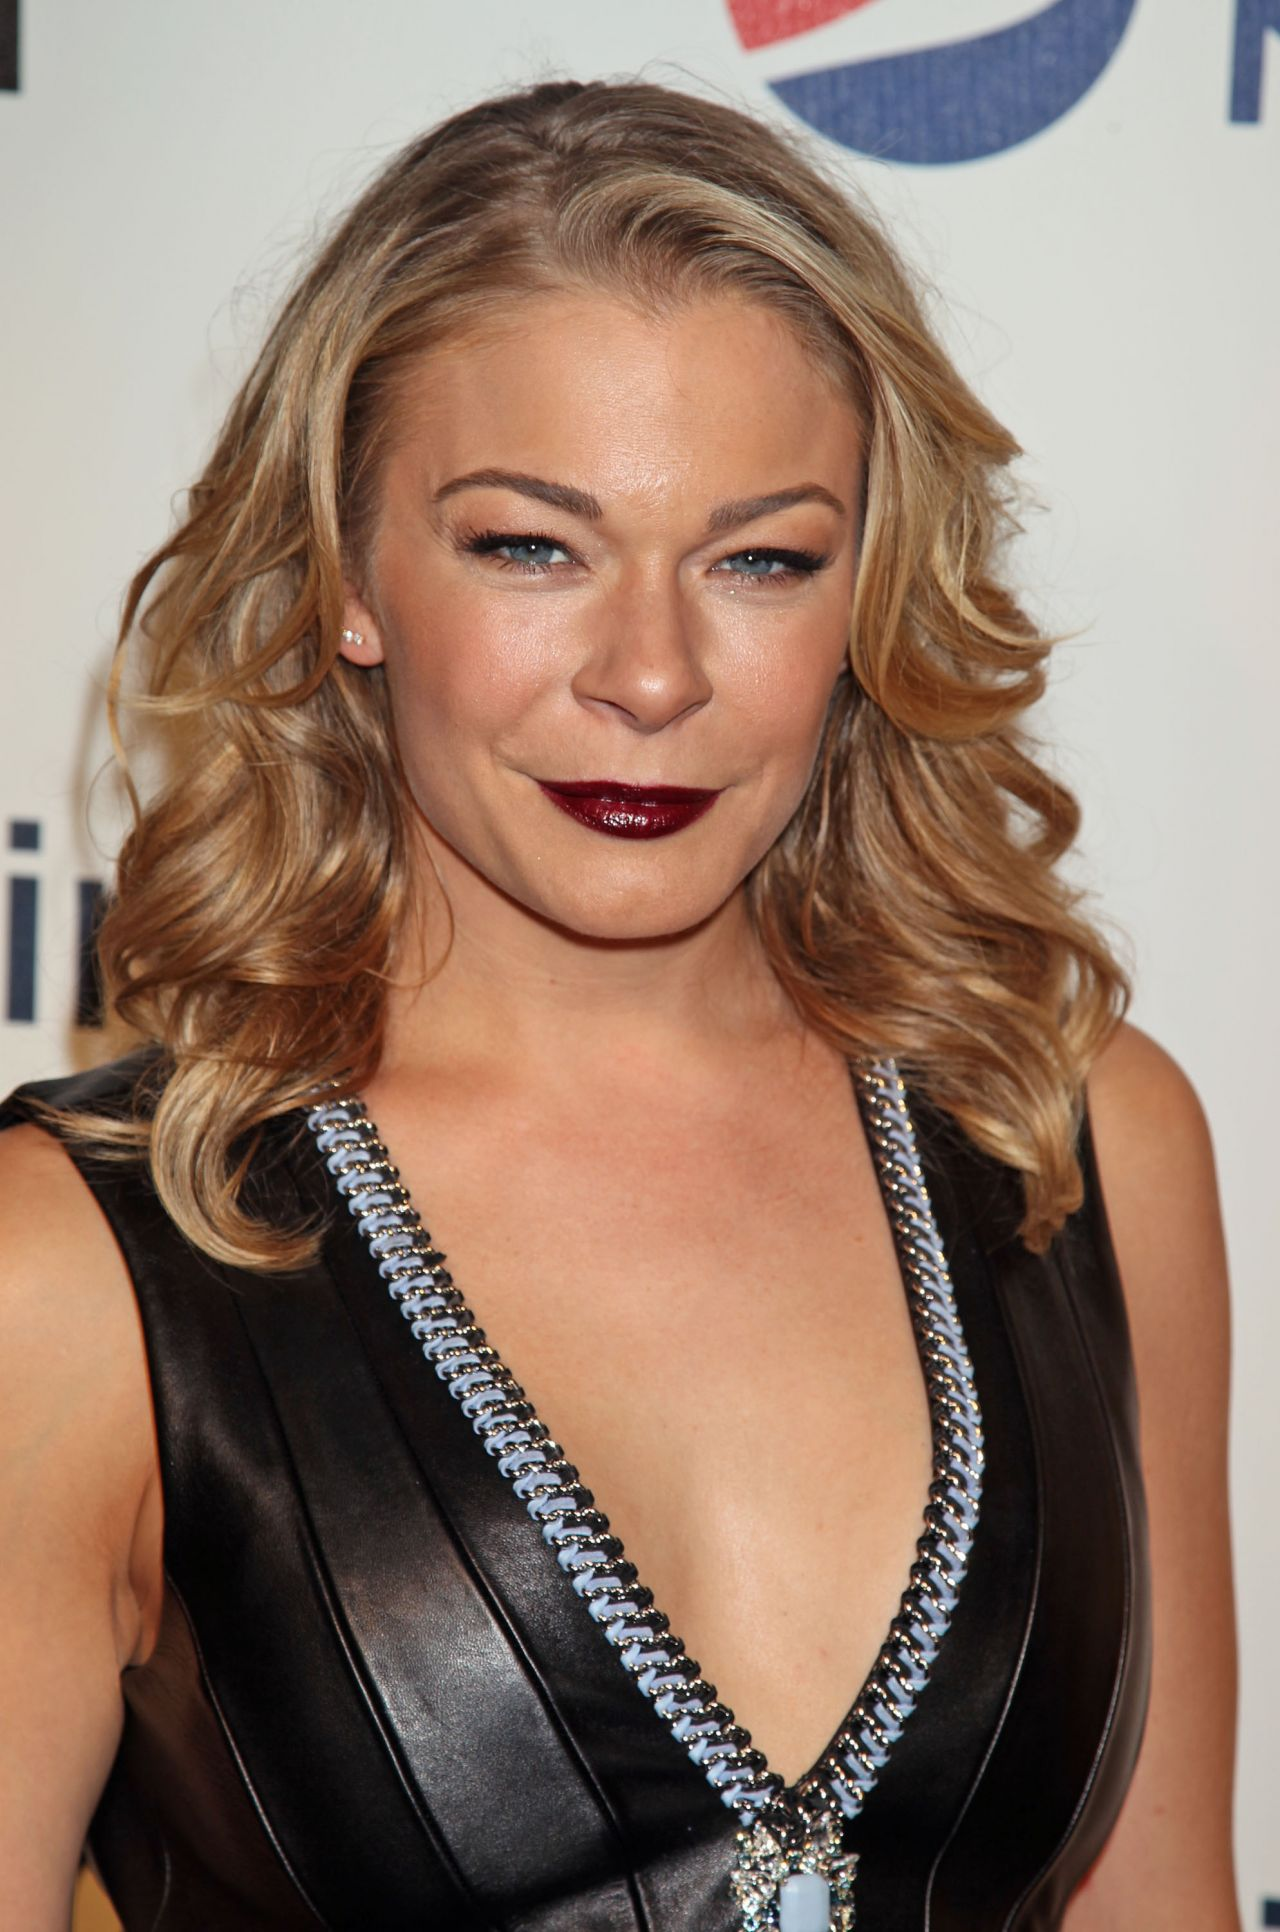 LeAnn Rimes earned a  million dollar salary, leaving the net worth at 40 million in 2017